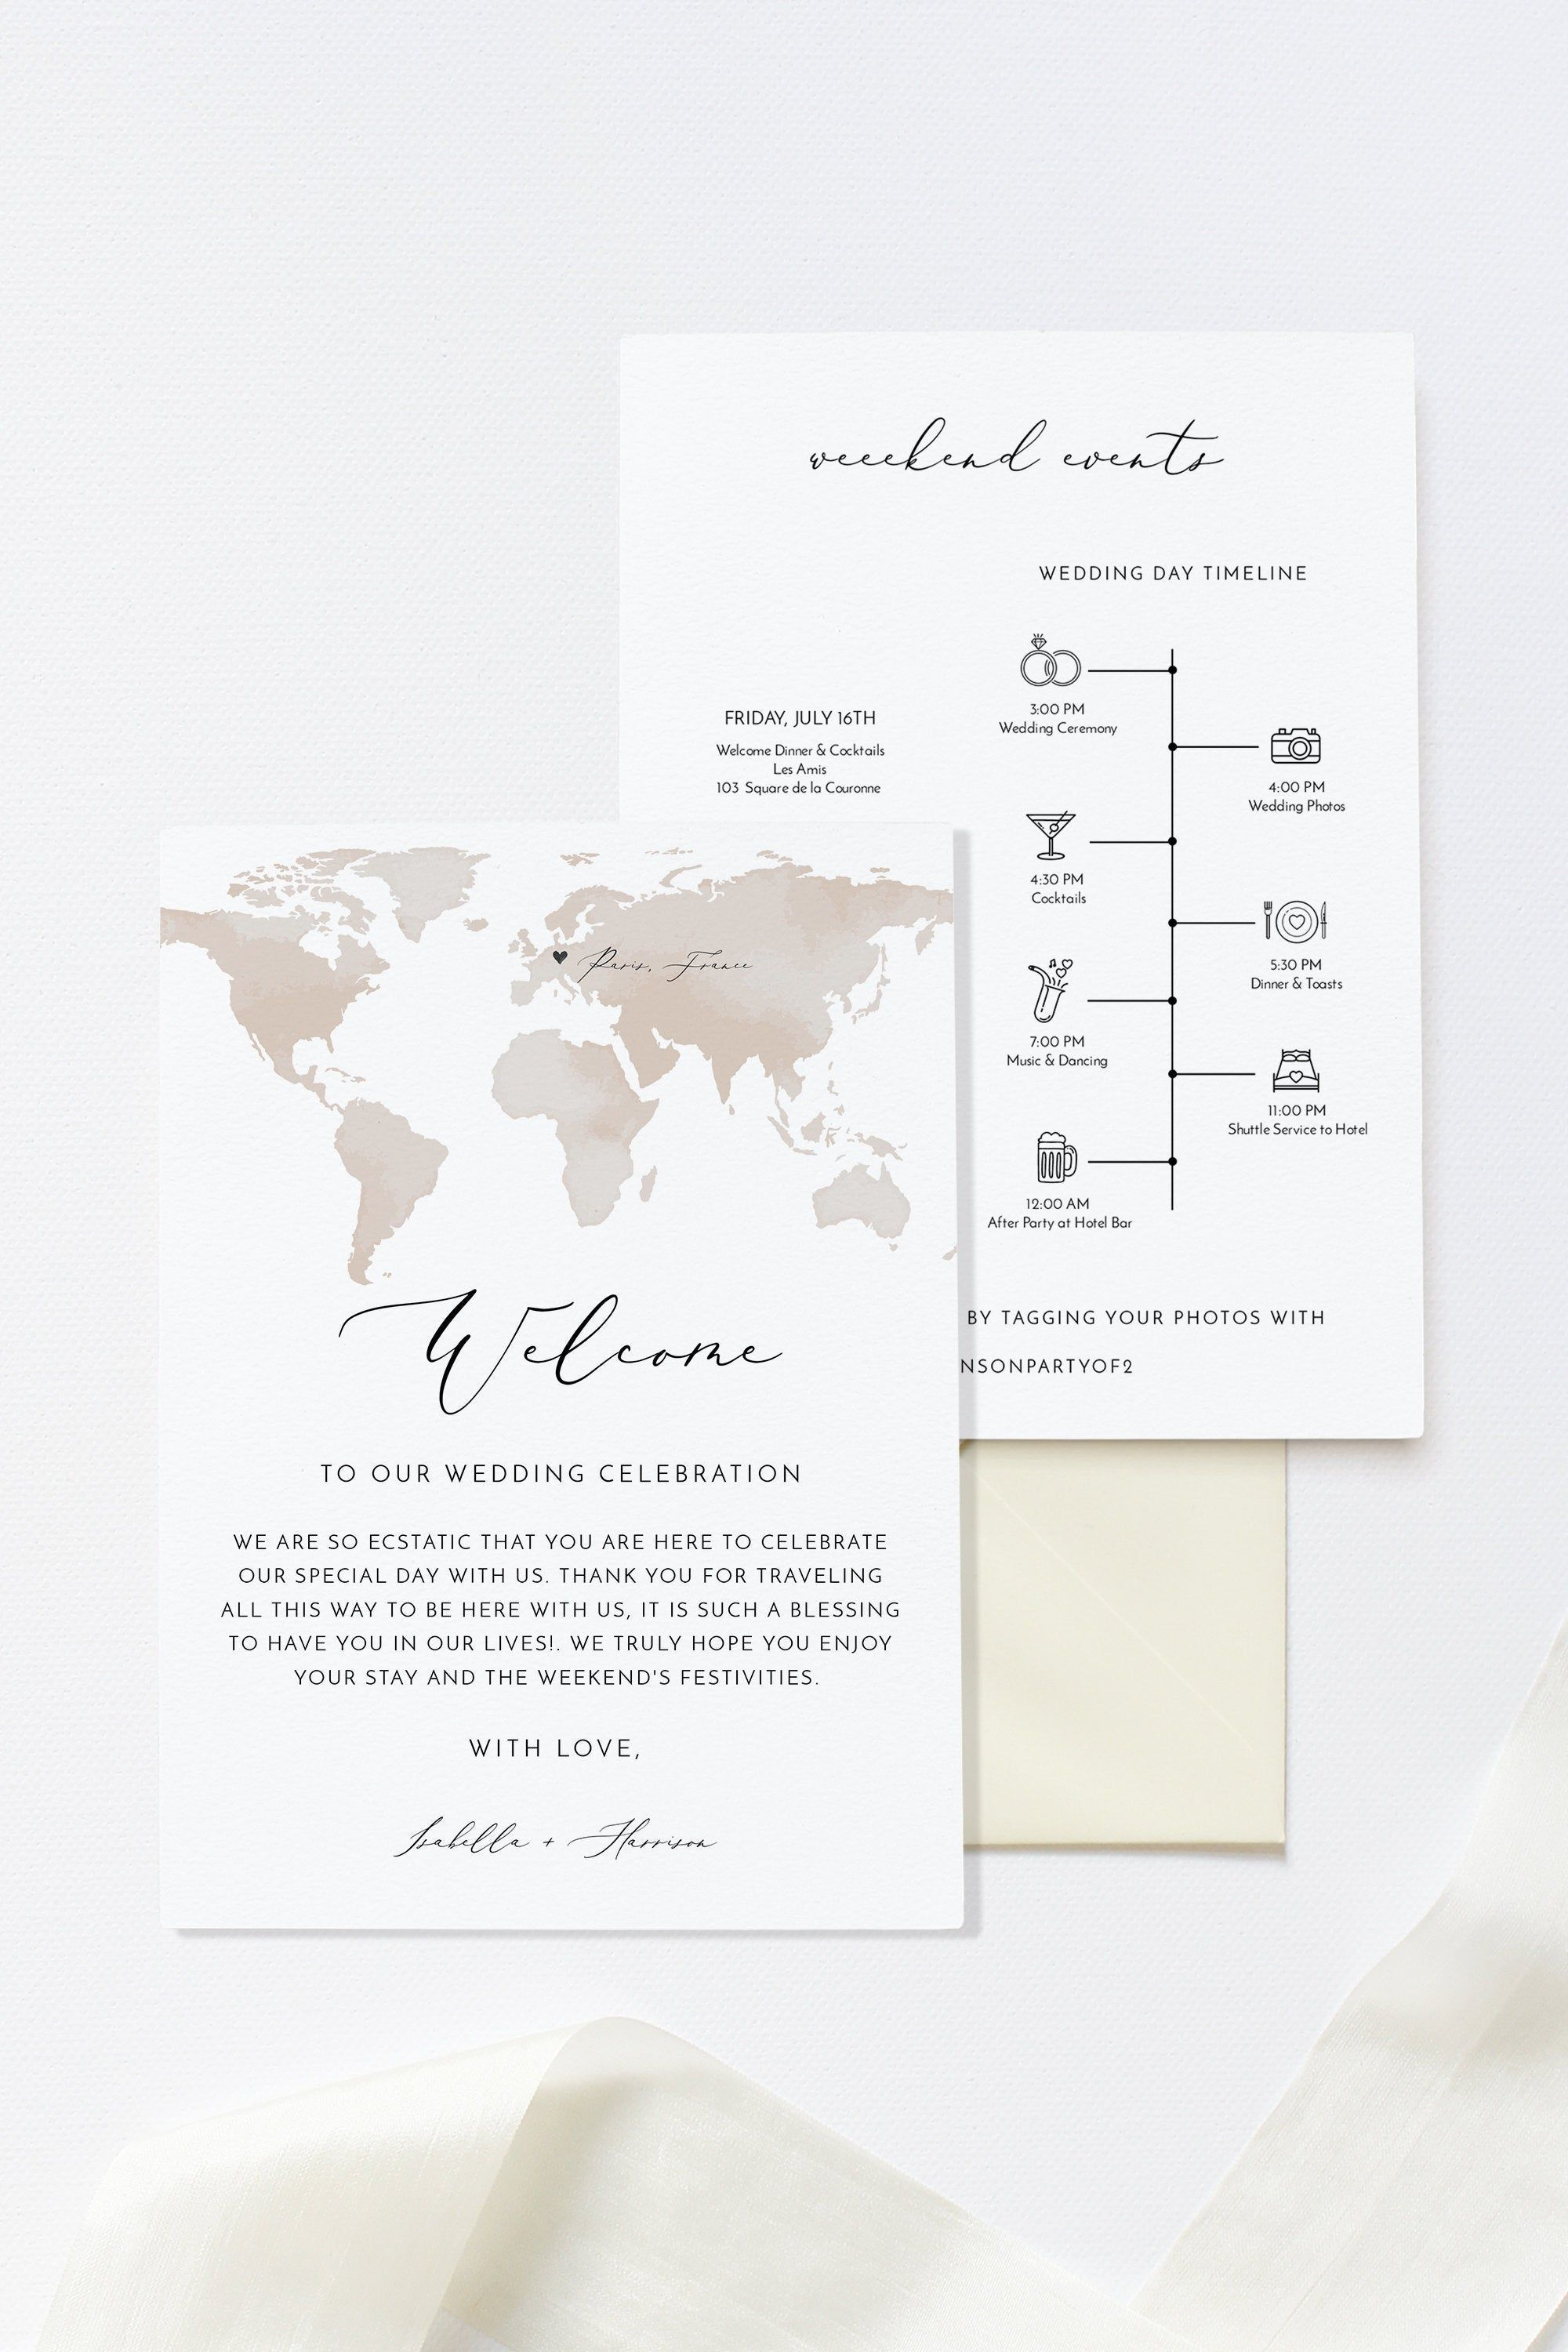 000 Staggering Destination Wedding Itinerary Template Photo  Welcome Letter And Sample FreeFull